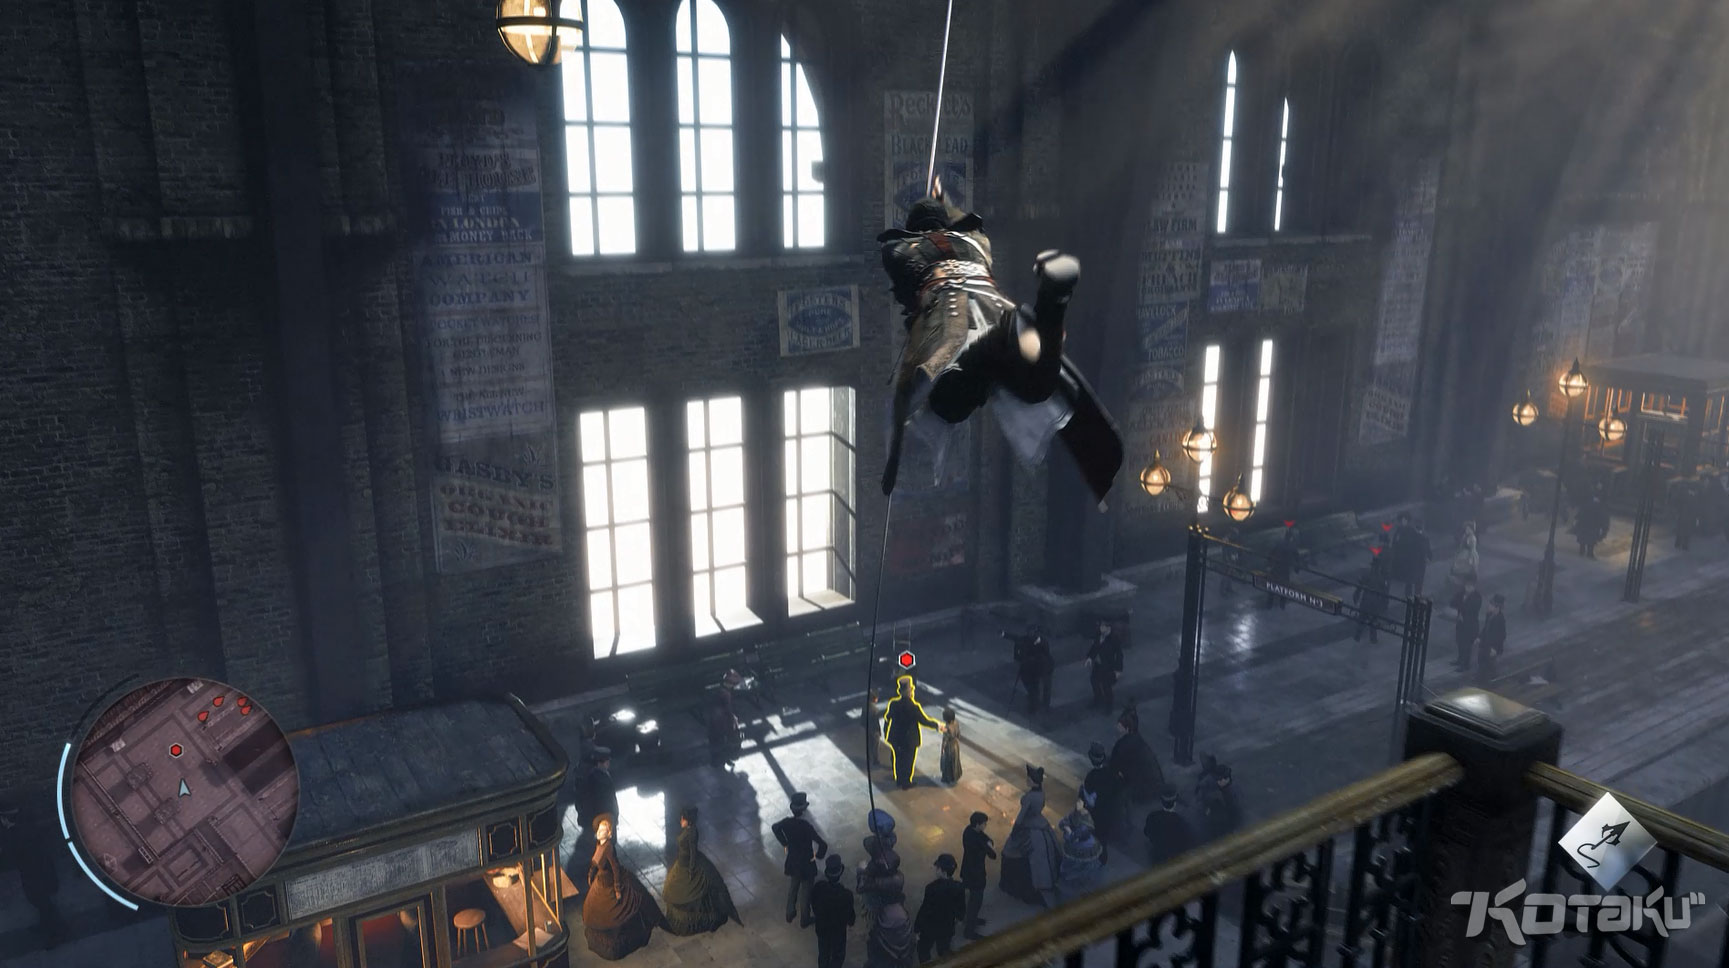 Assassin's Creed 0212 4 kotaku